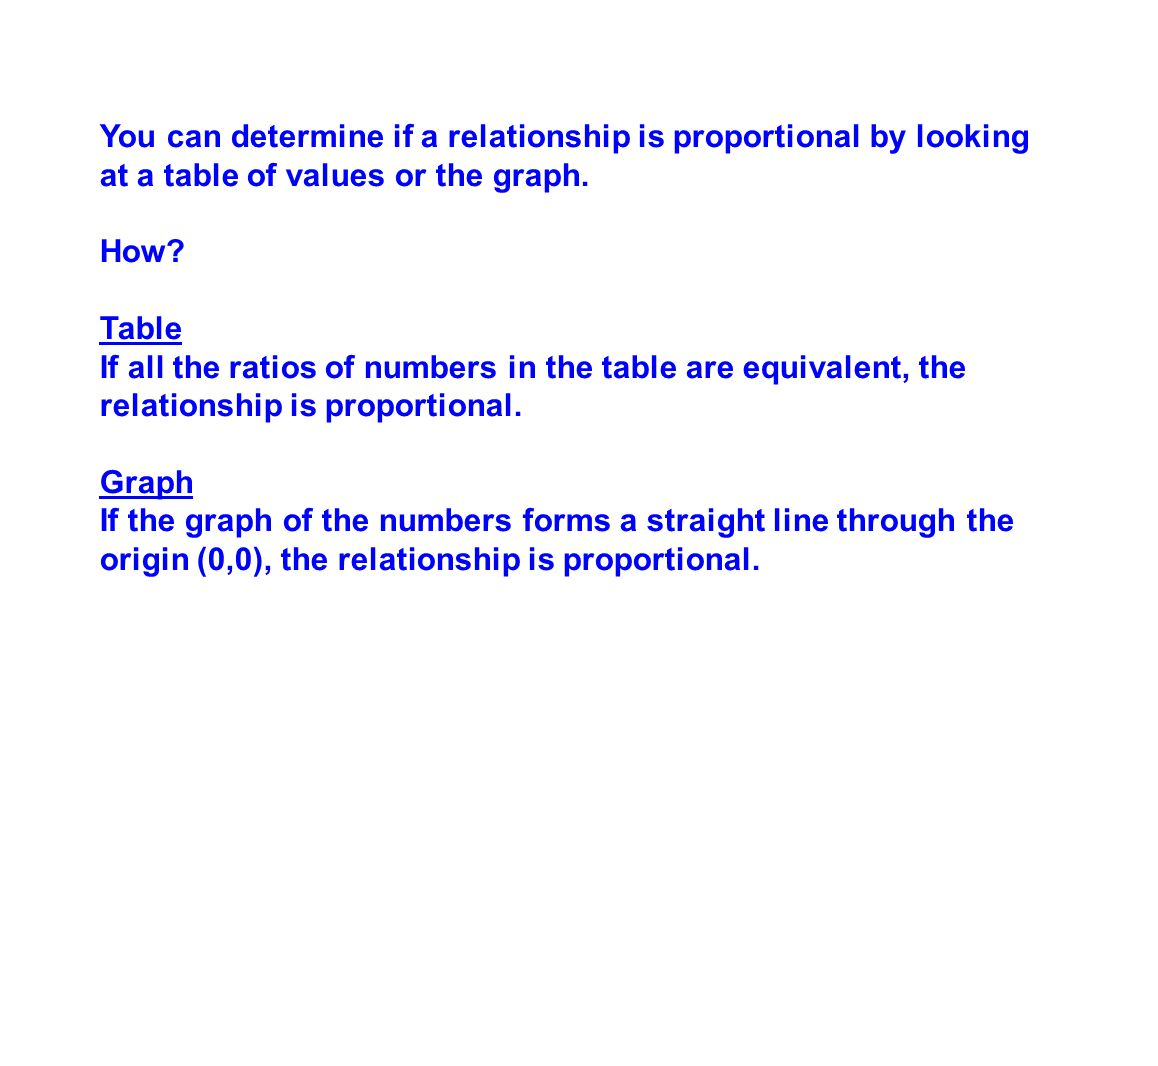 You can determine if a relationship is proportional by looking at a table of values or the graph.